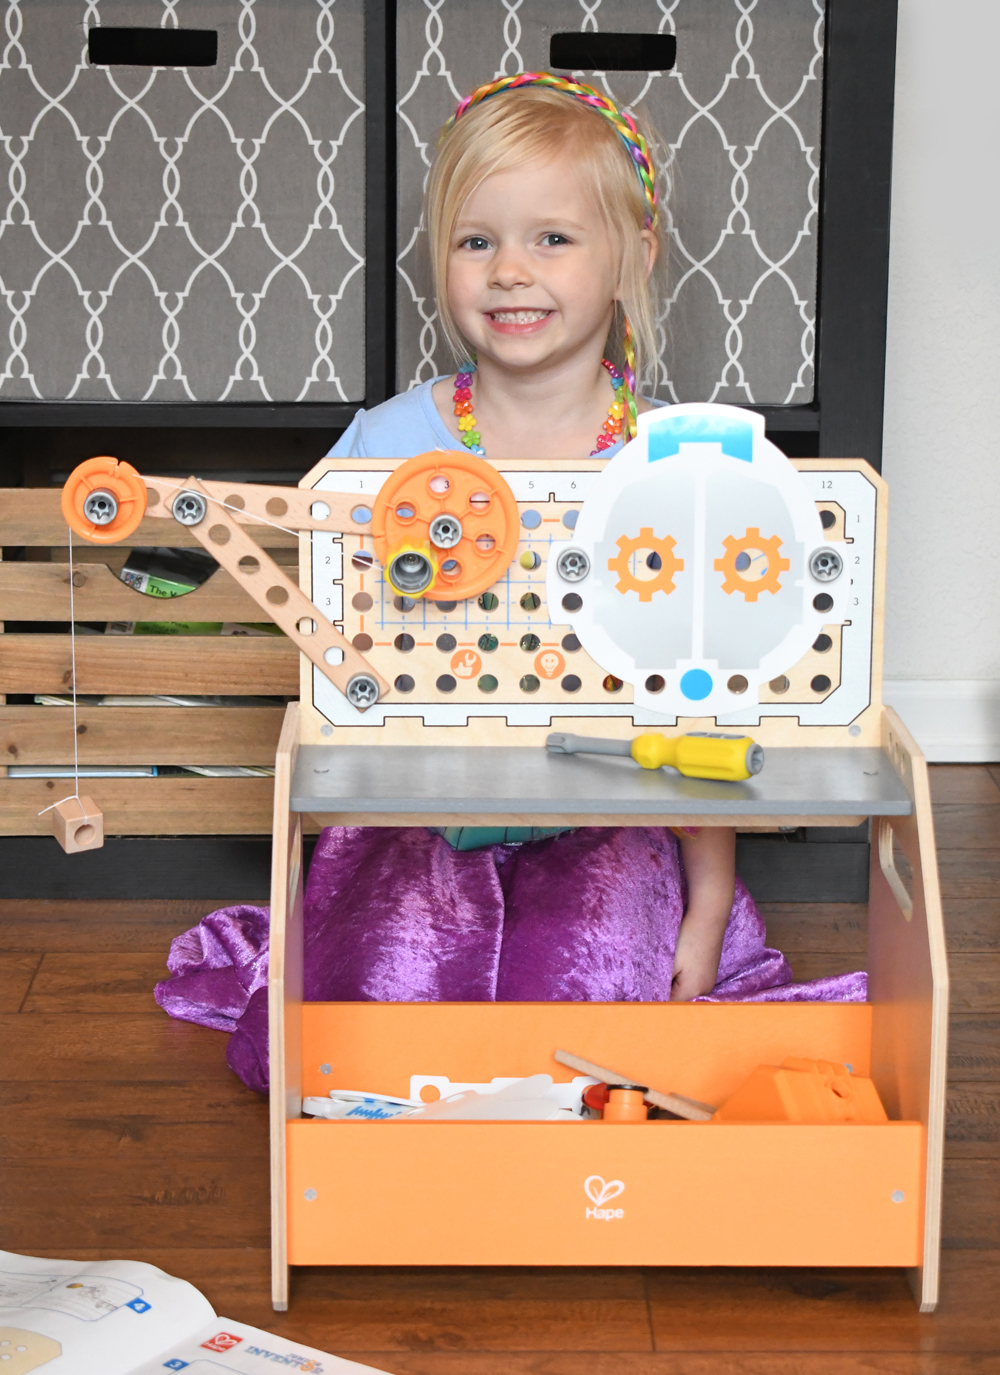 Hape Toys Discovery Workbench kids activity